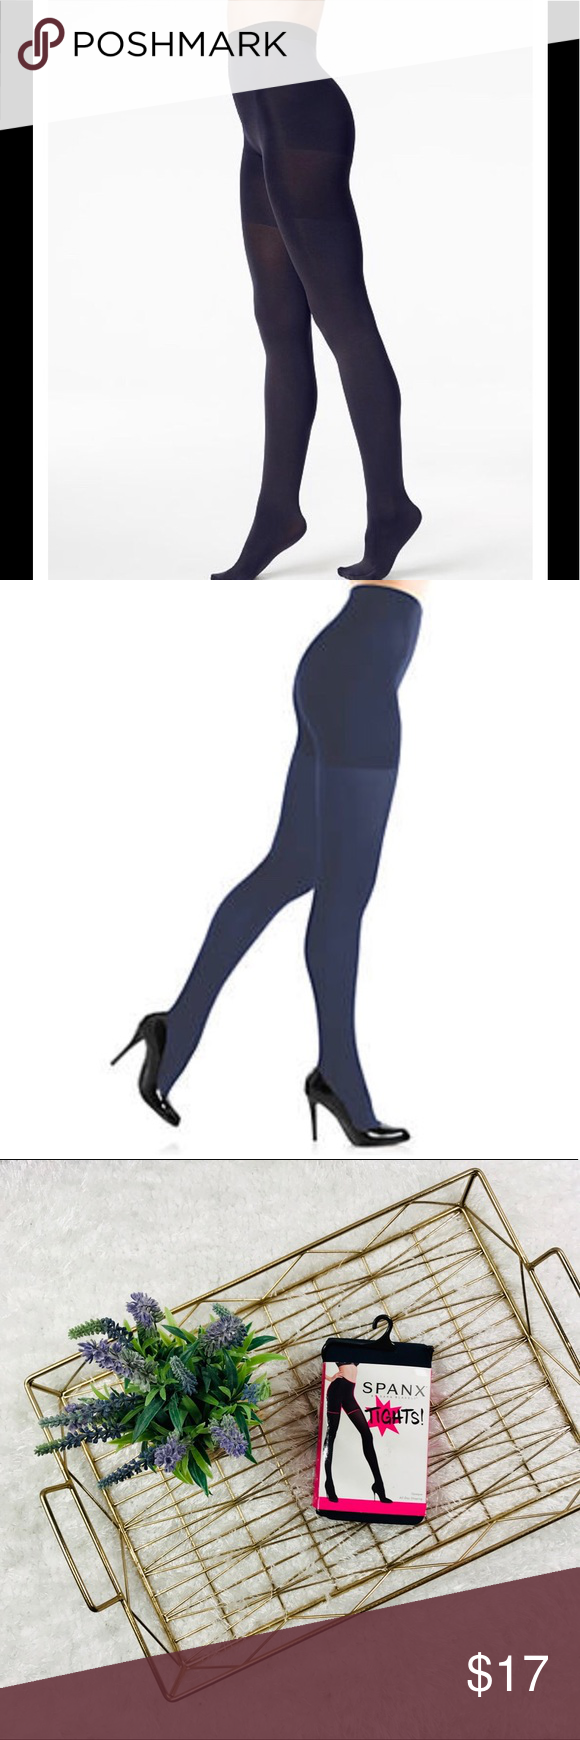 52155d820c1 NWB SPANX Original Tights in Nightcap Navy Size G NEW WITH BOX! Spanx  Original Shaping